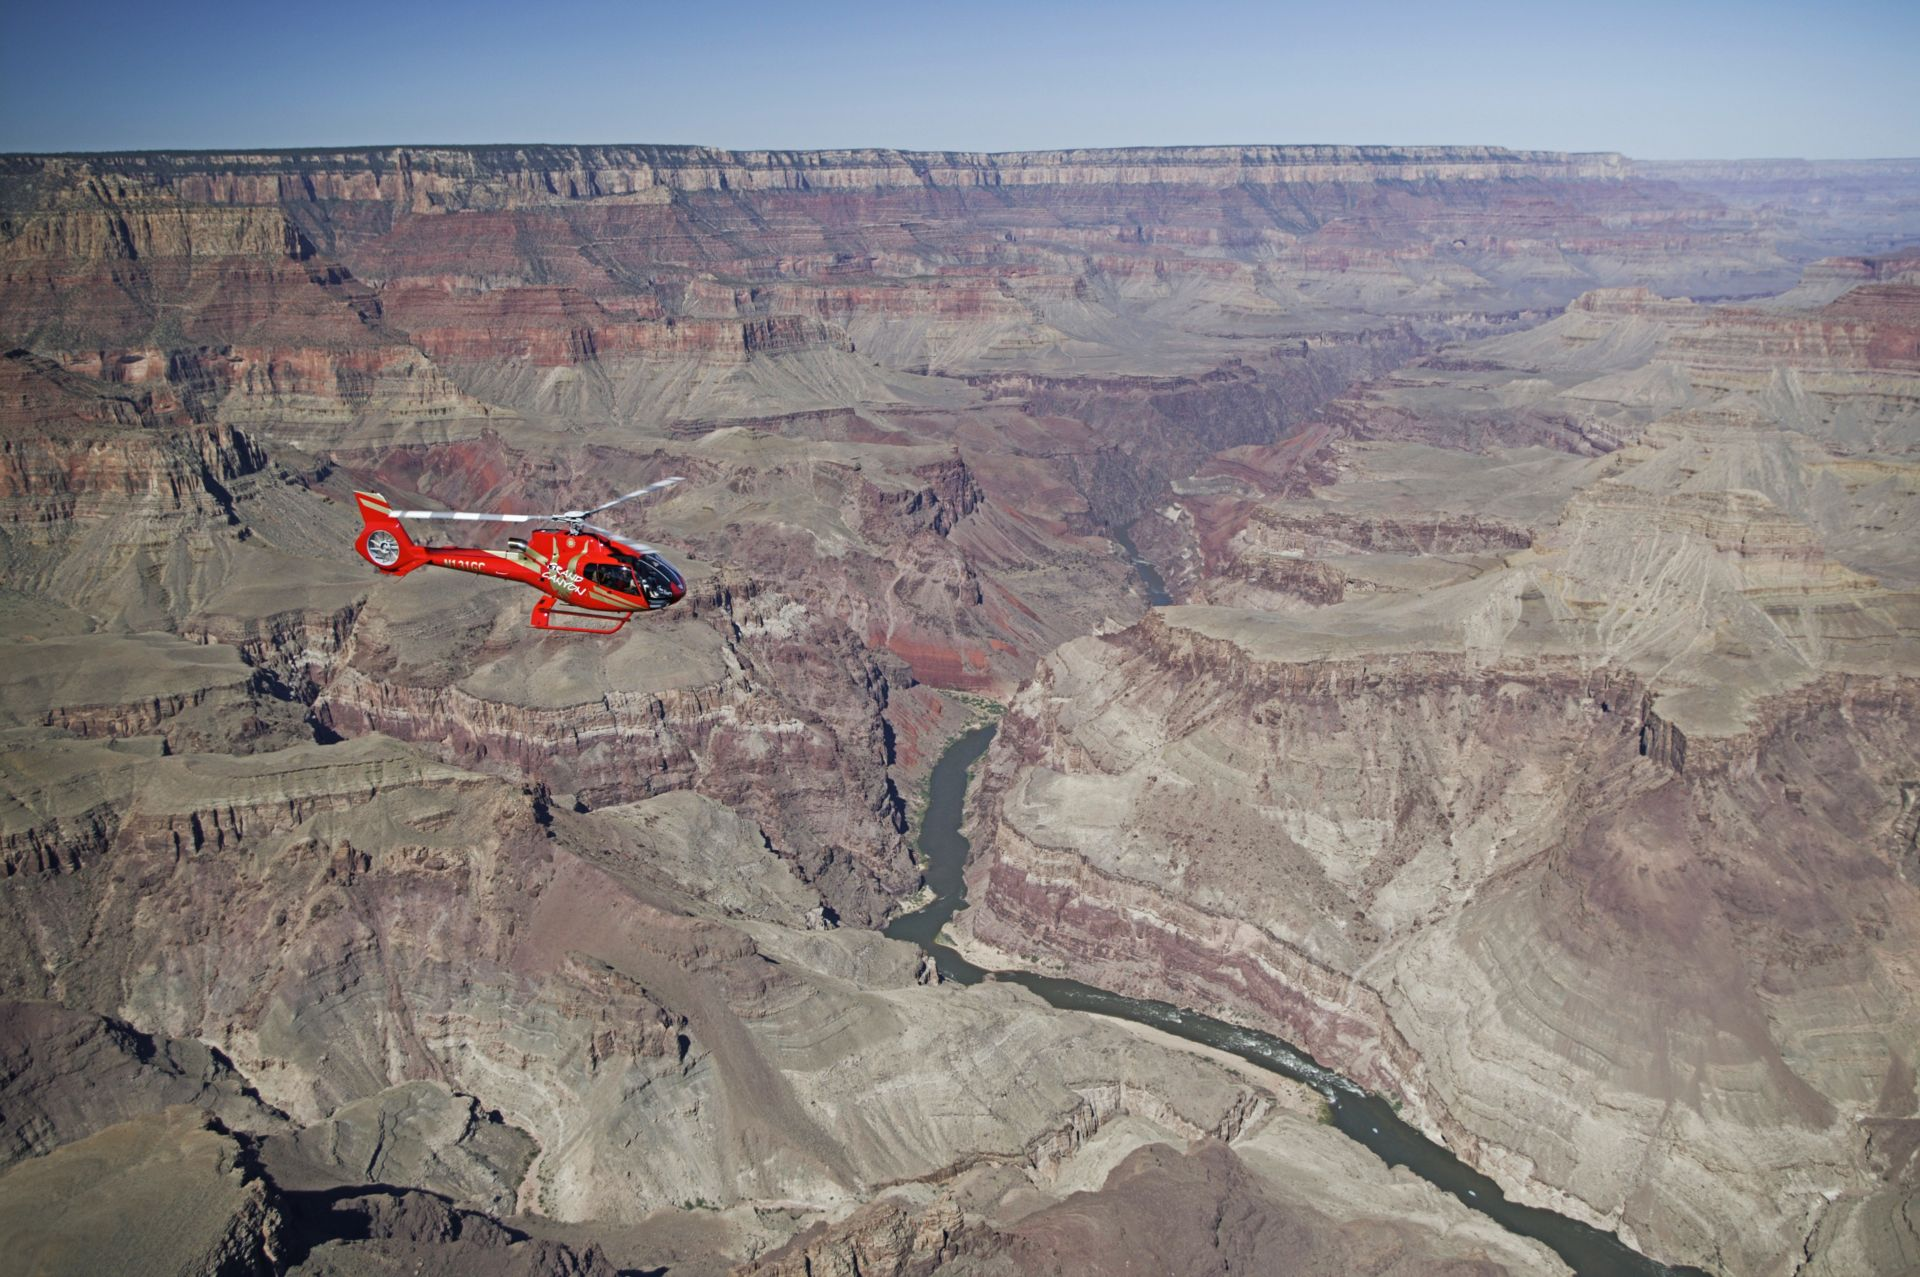 Soar into adventure on a Grand Canyon helicopter tour